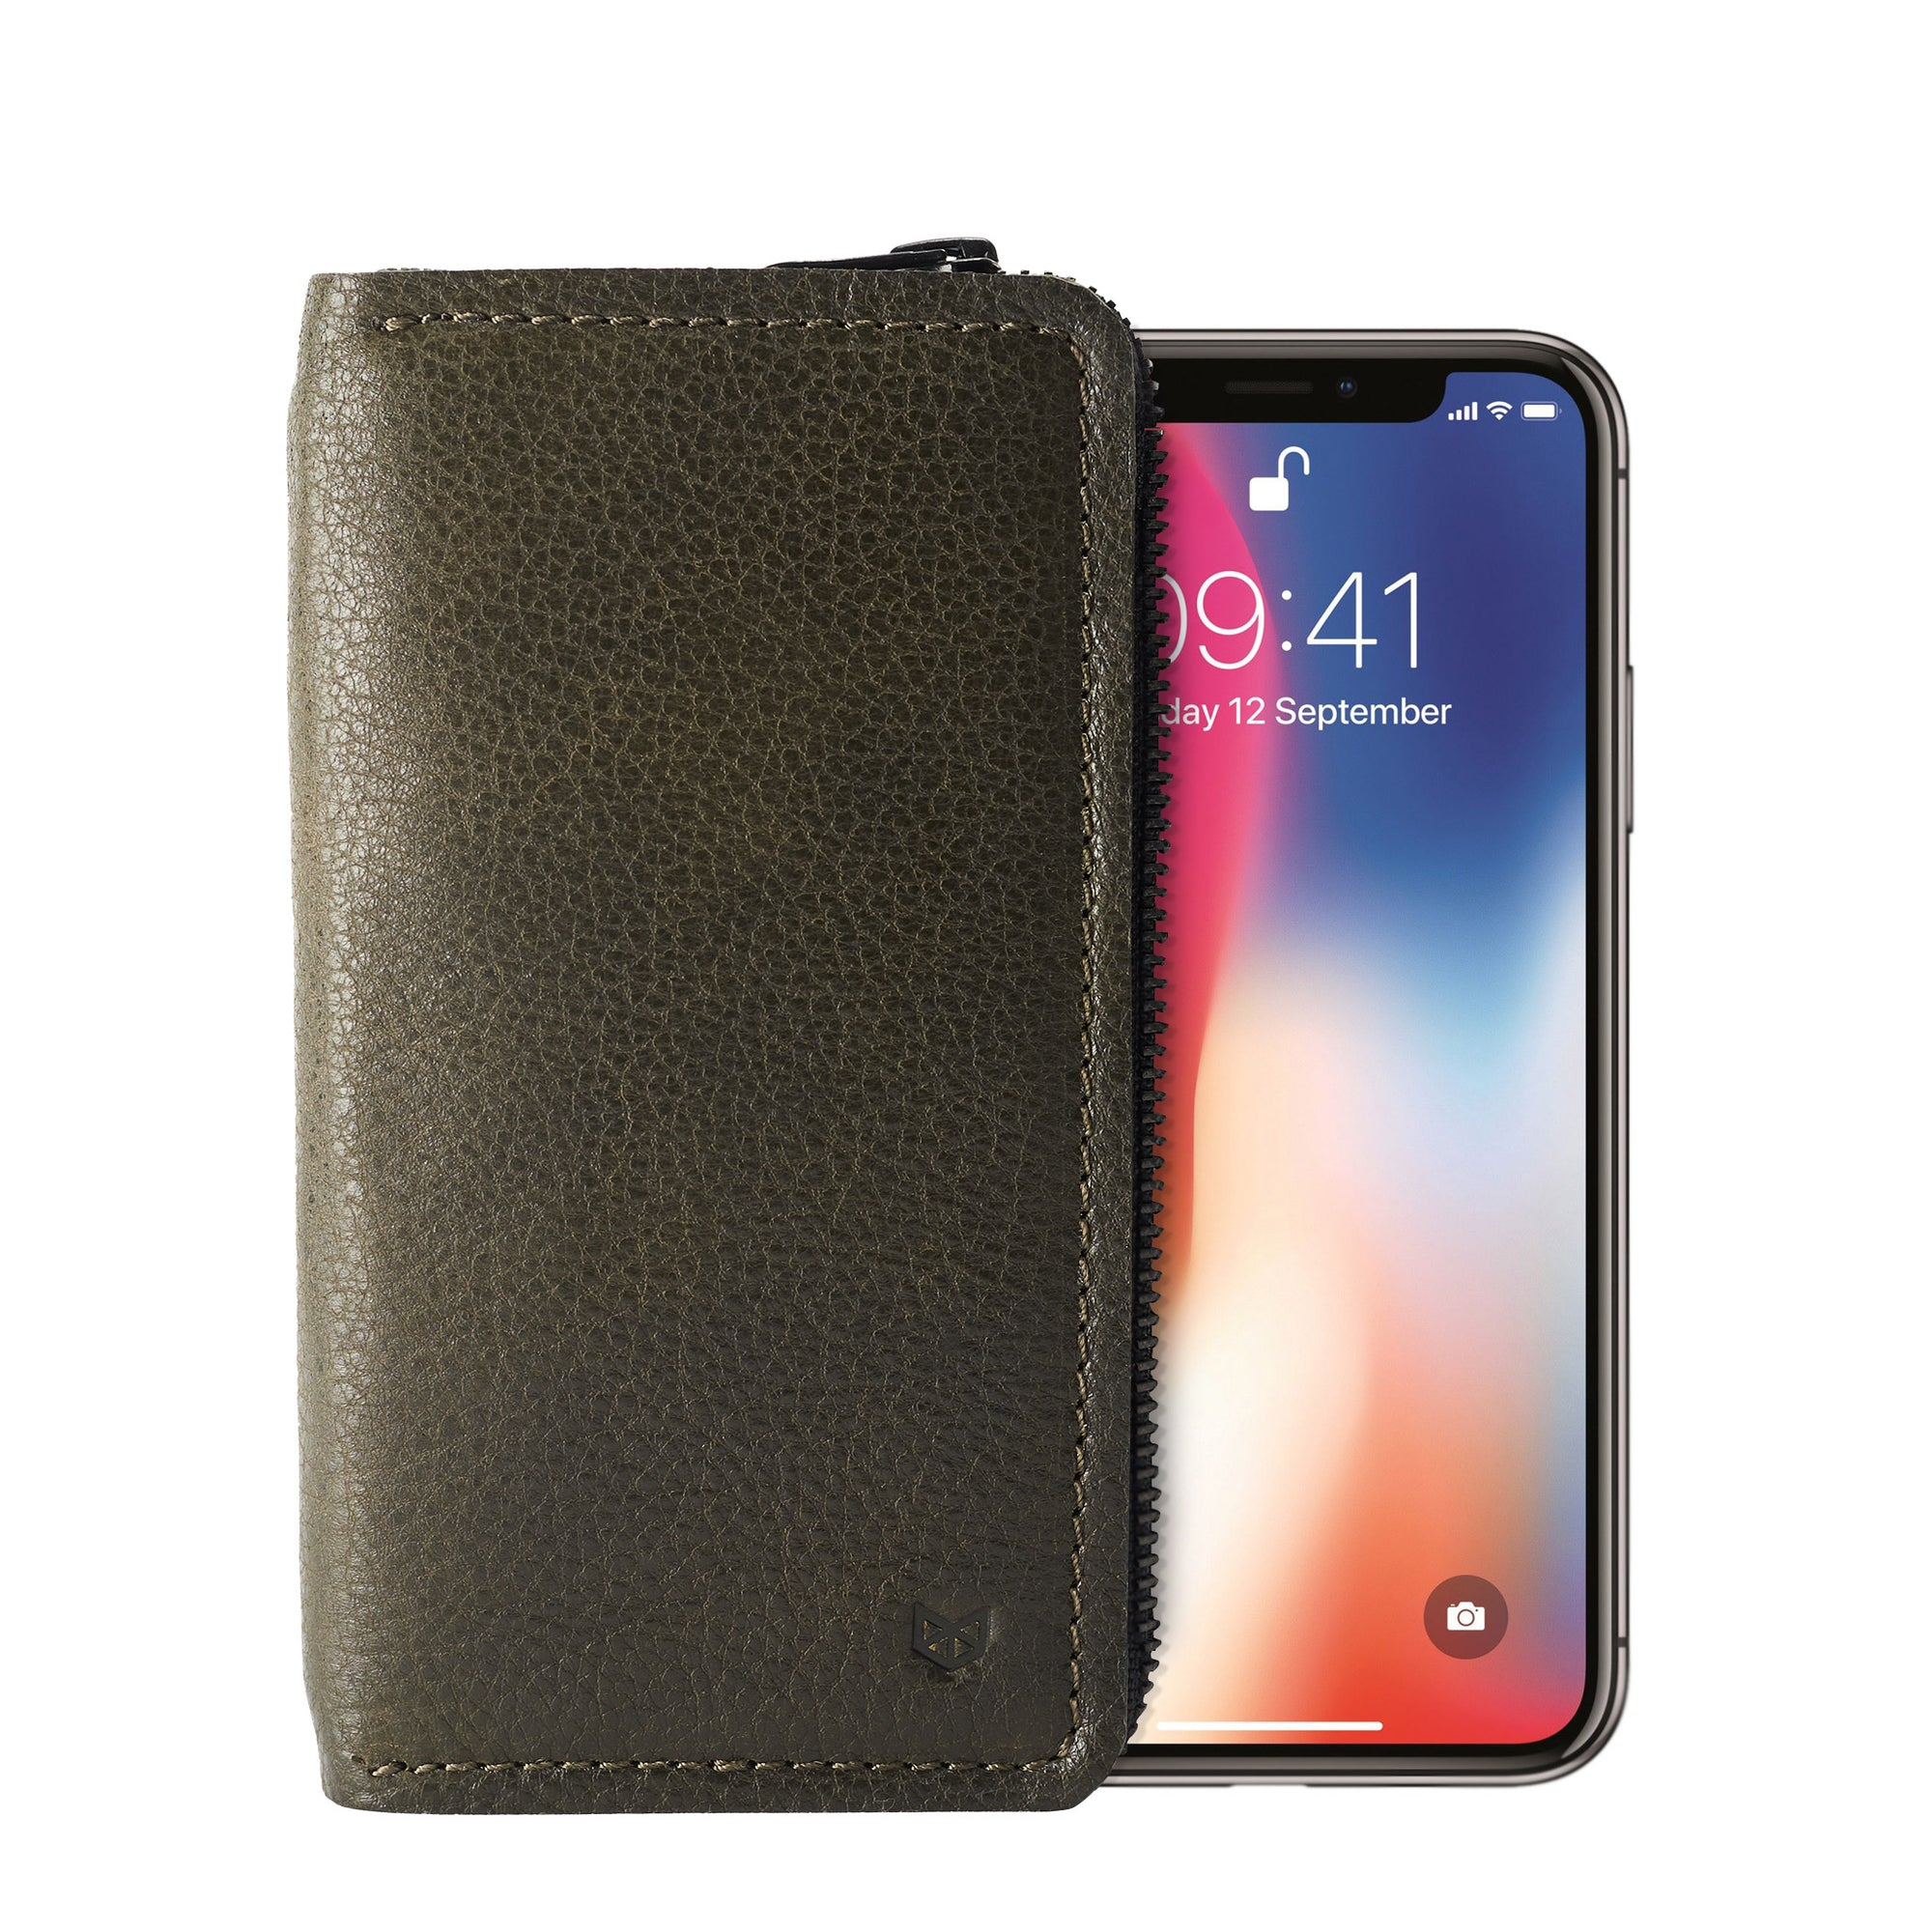 Green iPhone leather wallet stand case for mens gifts. iPhone x, iPhone 10, iPhone 8 plus leather stand sleeve